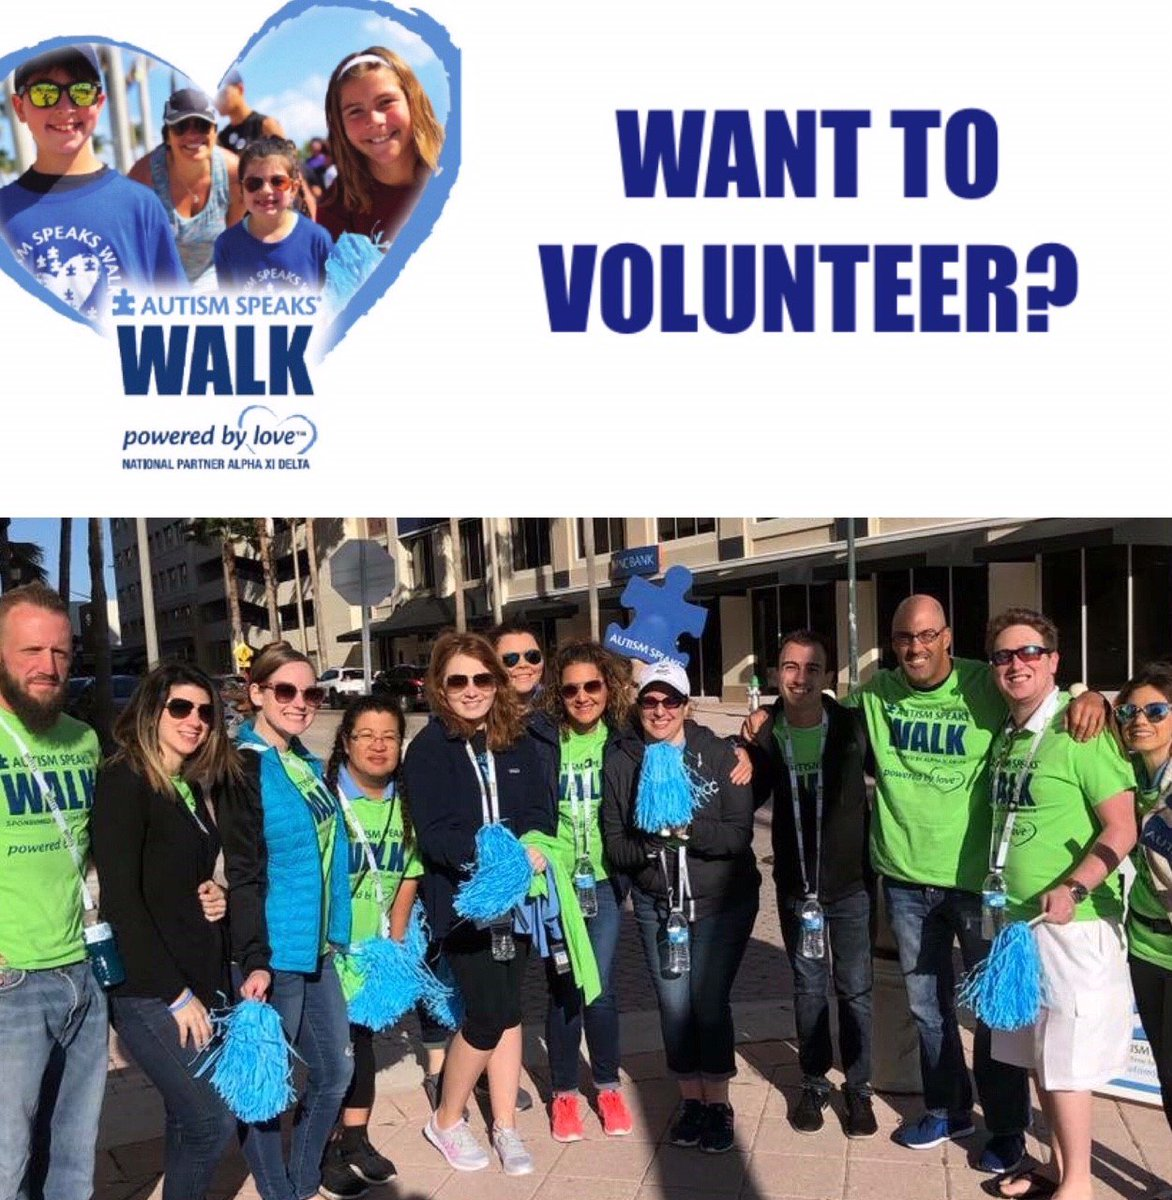 VOLUNTEERS NEEDED! For the #AutismSpeaksWalk! Their sensory-friendly family walk is coming up on March 3, and they could use YOUR help! If you're interested in volunteering or walking, register at https://t.co/uAWtArpjIp.